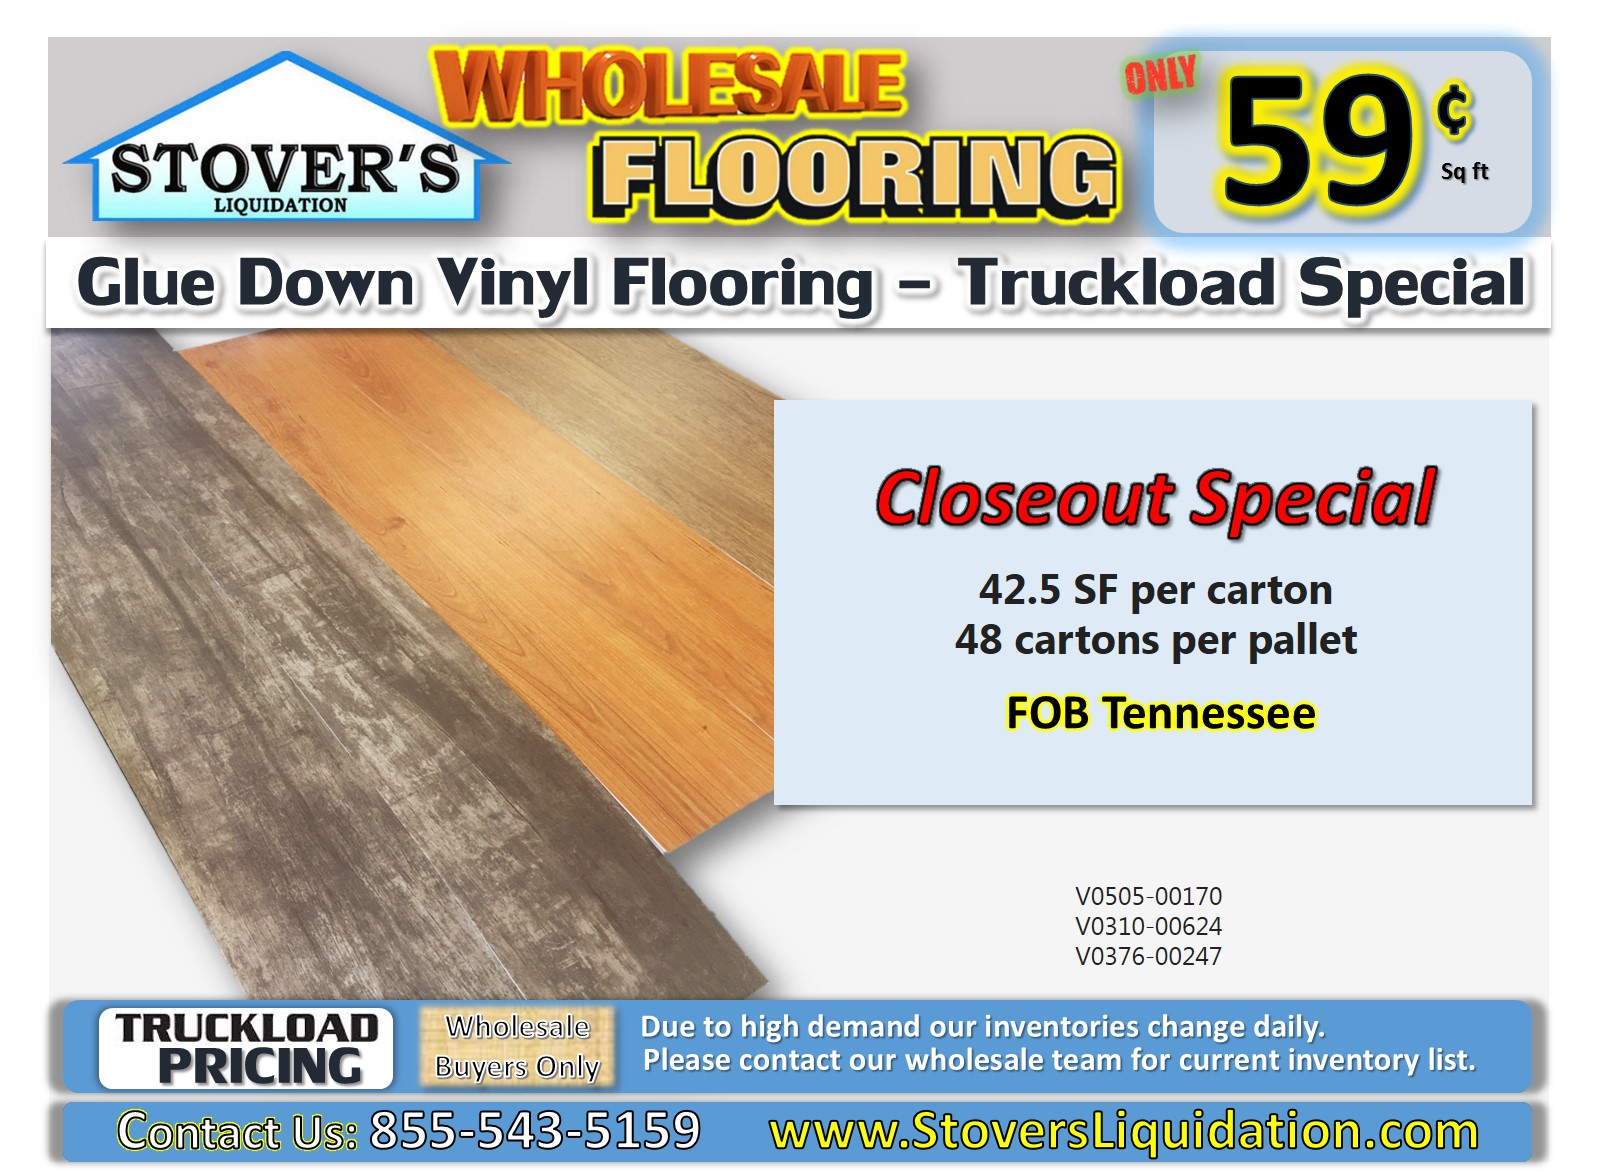 glue down vinyl | truckload | closeout special | wholesale